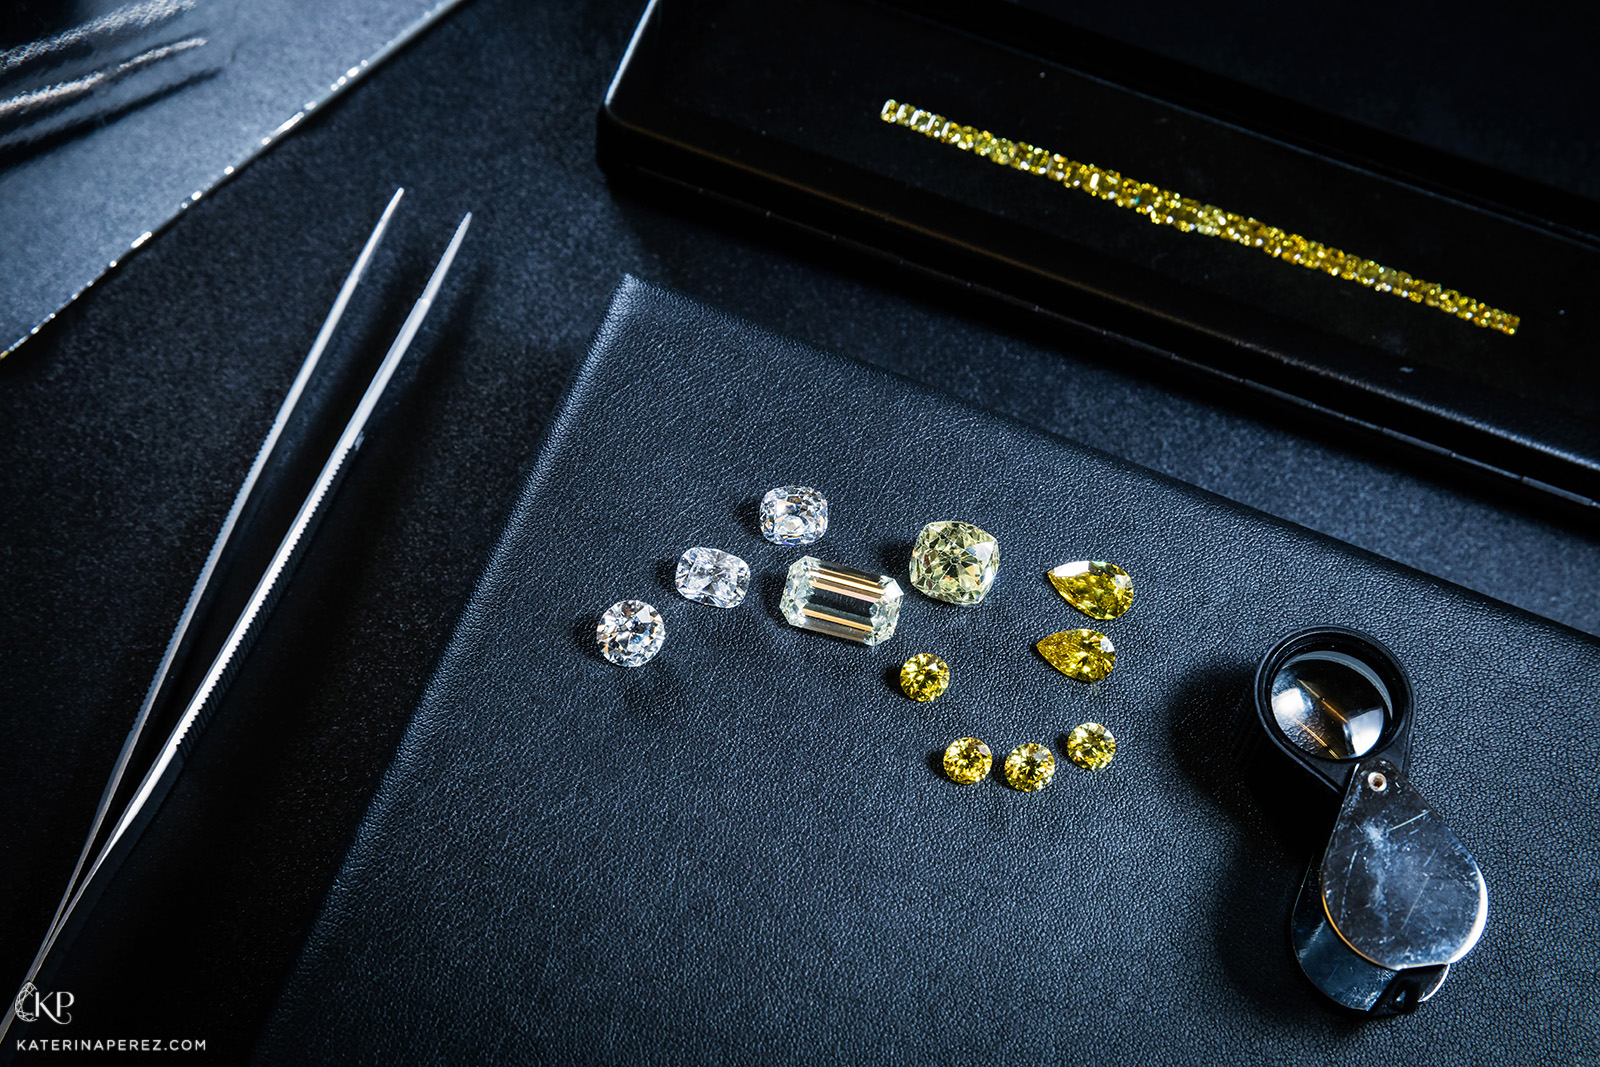 Filippo G&G selection of diamonds, varying from colourless to fancy yellow colour. Photo by Simon Martner for katerinaperez.com